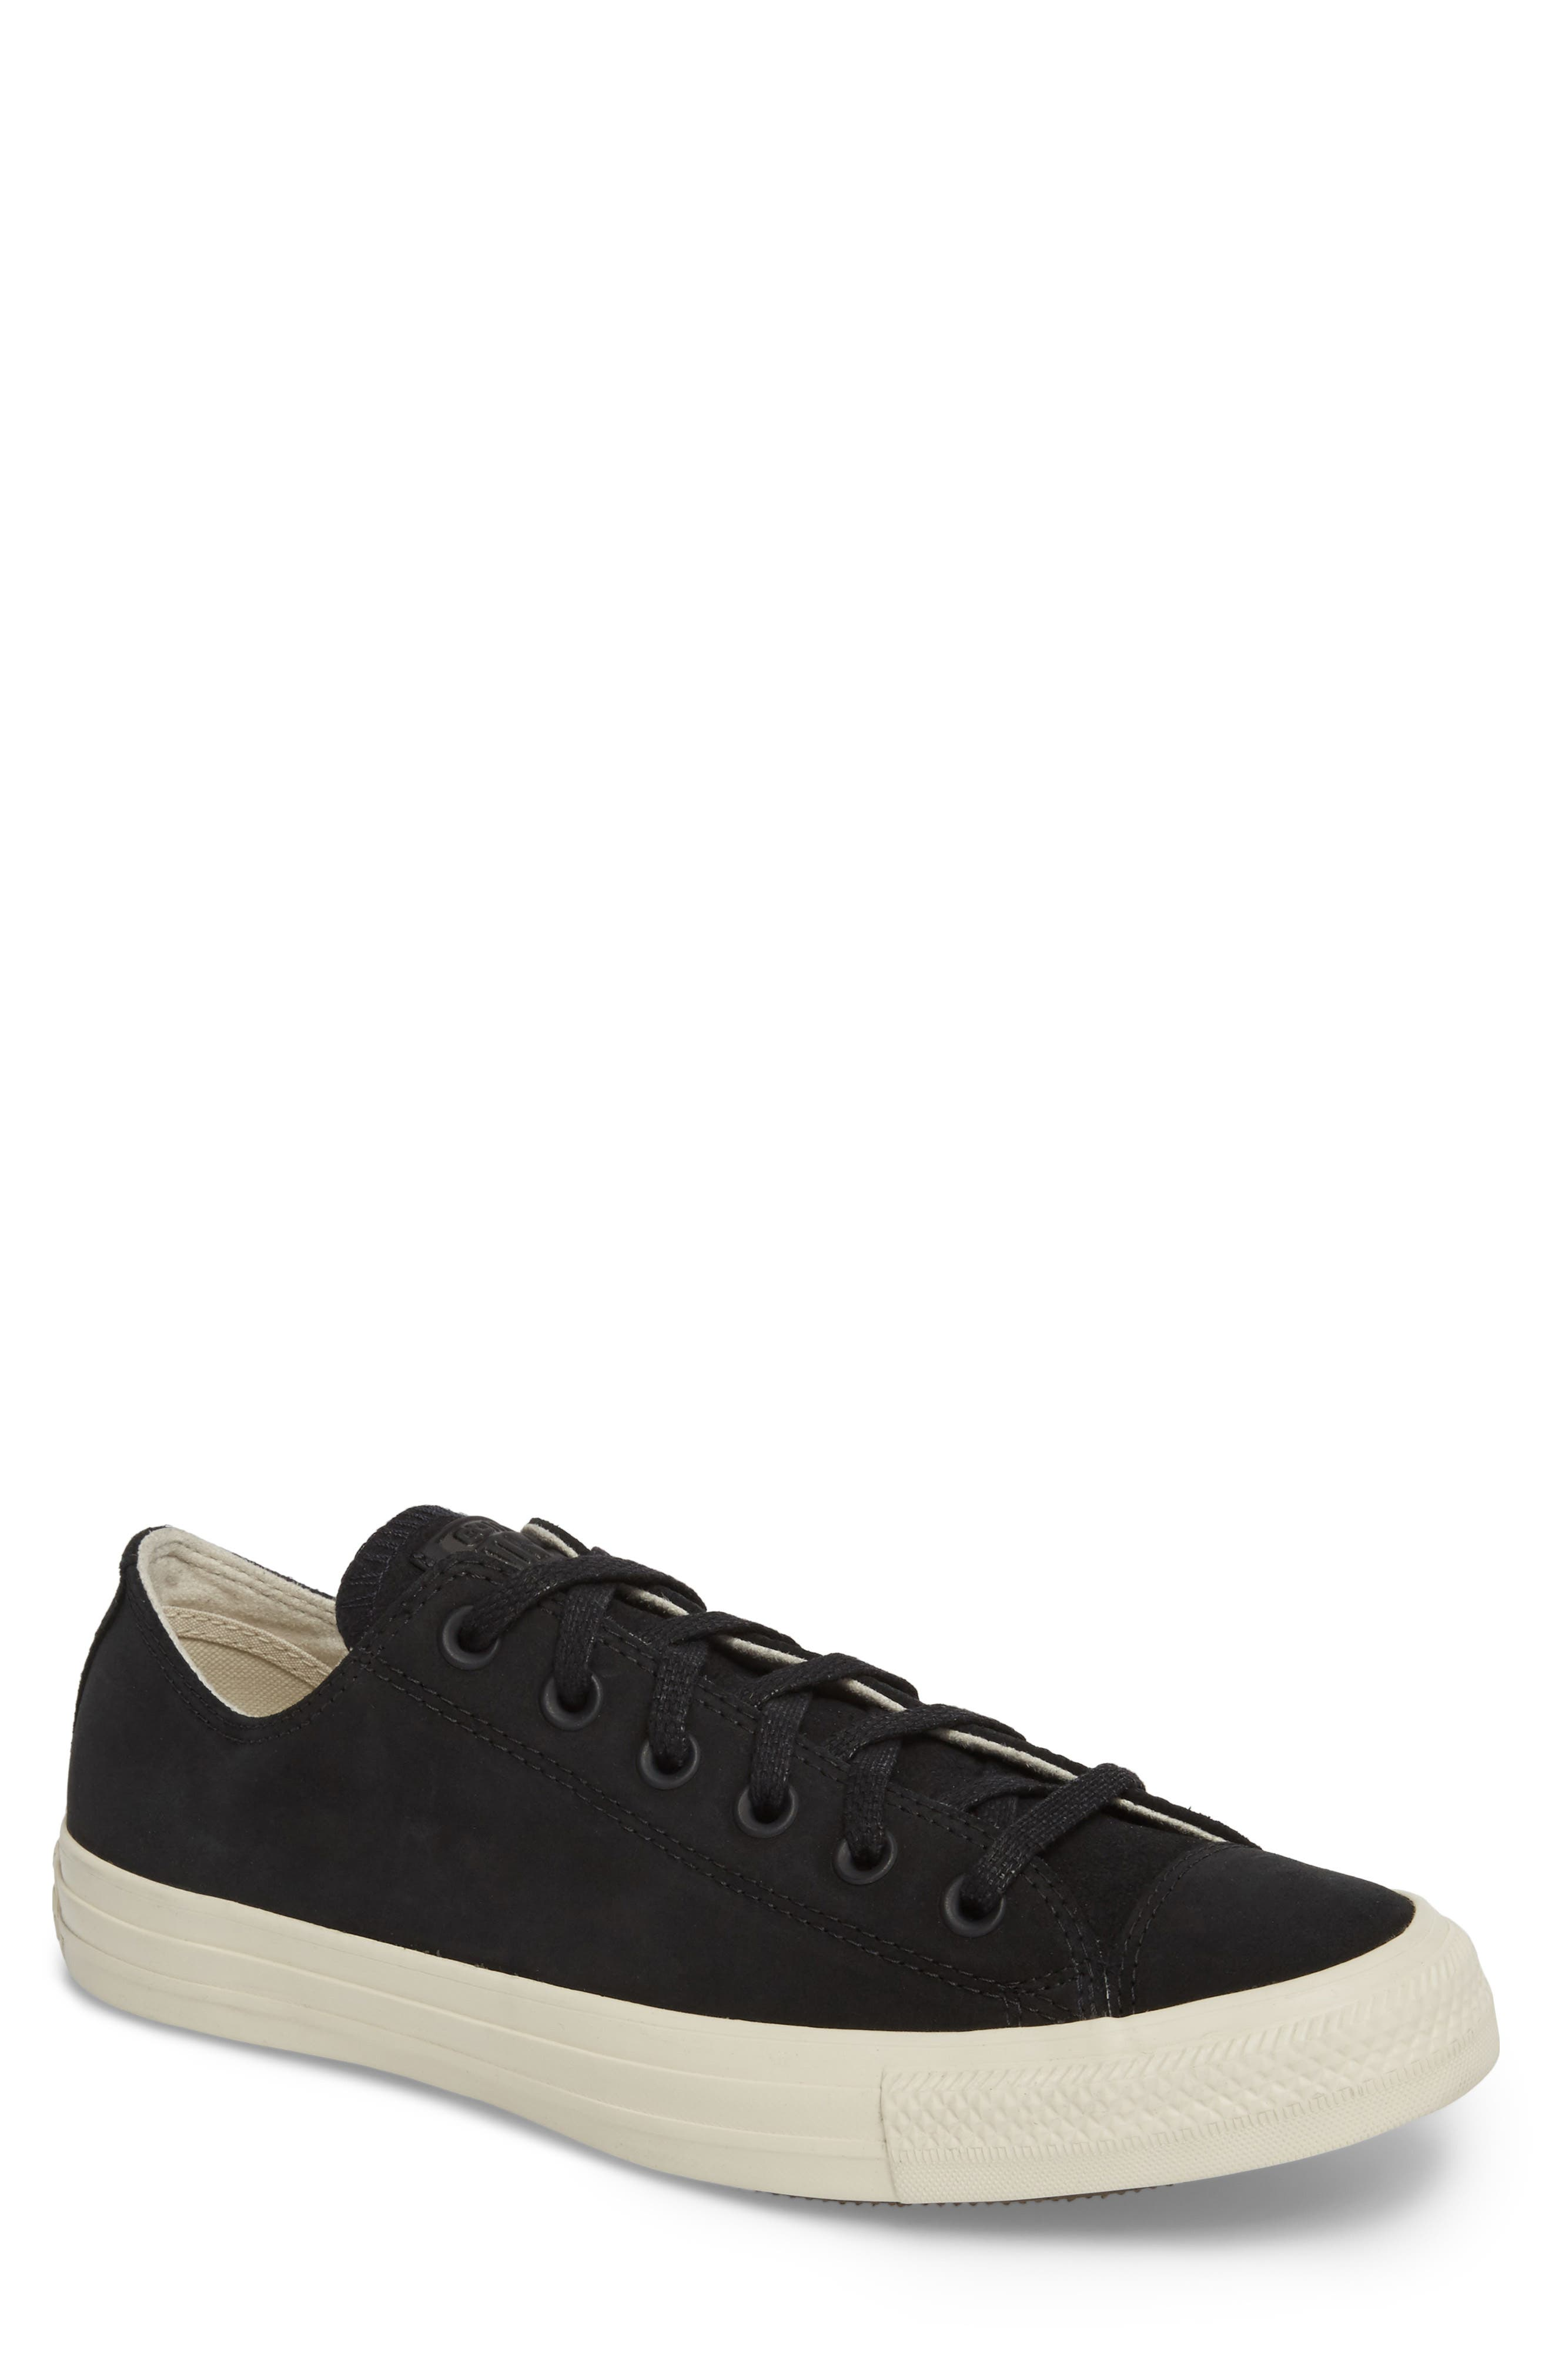 Chuck Taylor<sup>®</sup> All Star<sup>®</sup> Low Top Sneaker,                             Main thumbnail 1, color,                             001